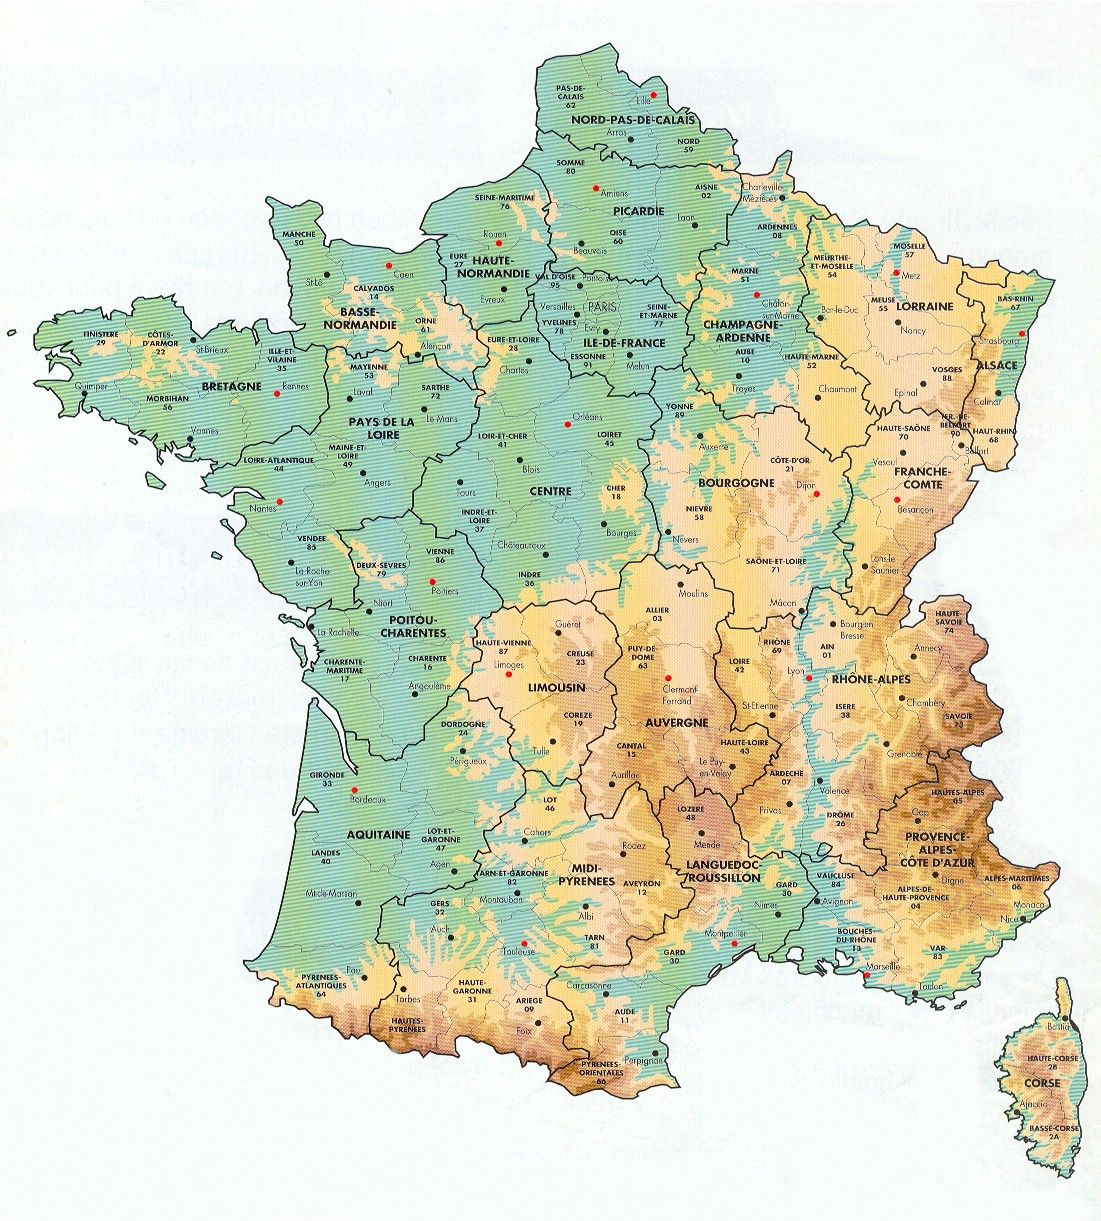 Map Of South East France.Geological Map Of France Showing Mountain Ranges Rivers Etc Note